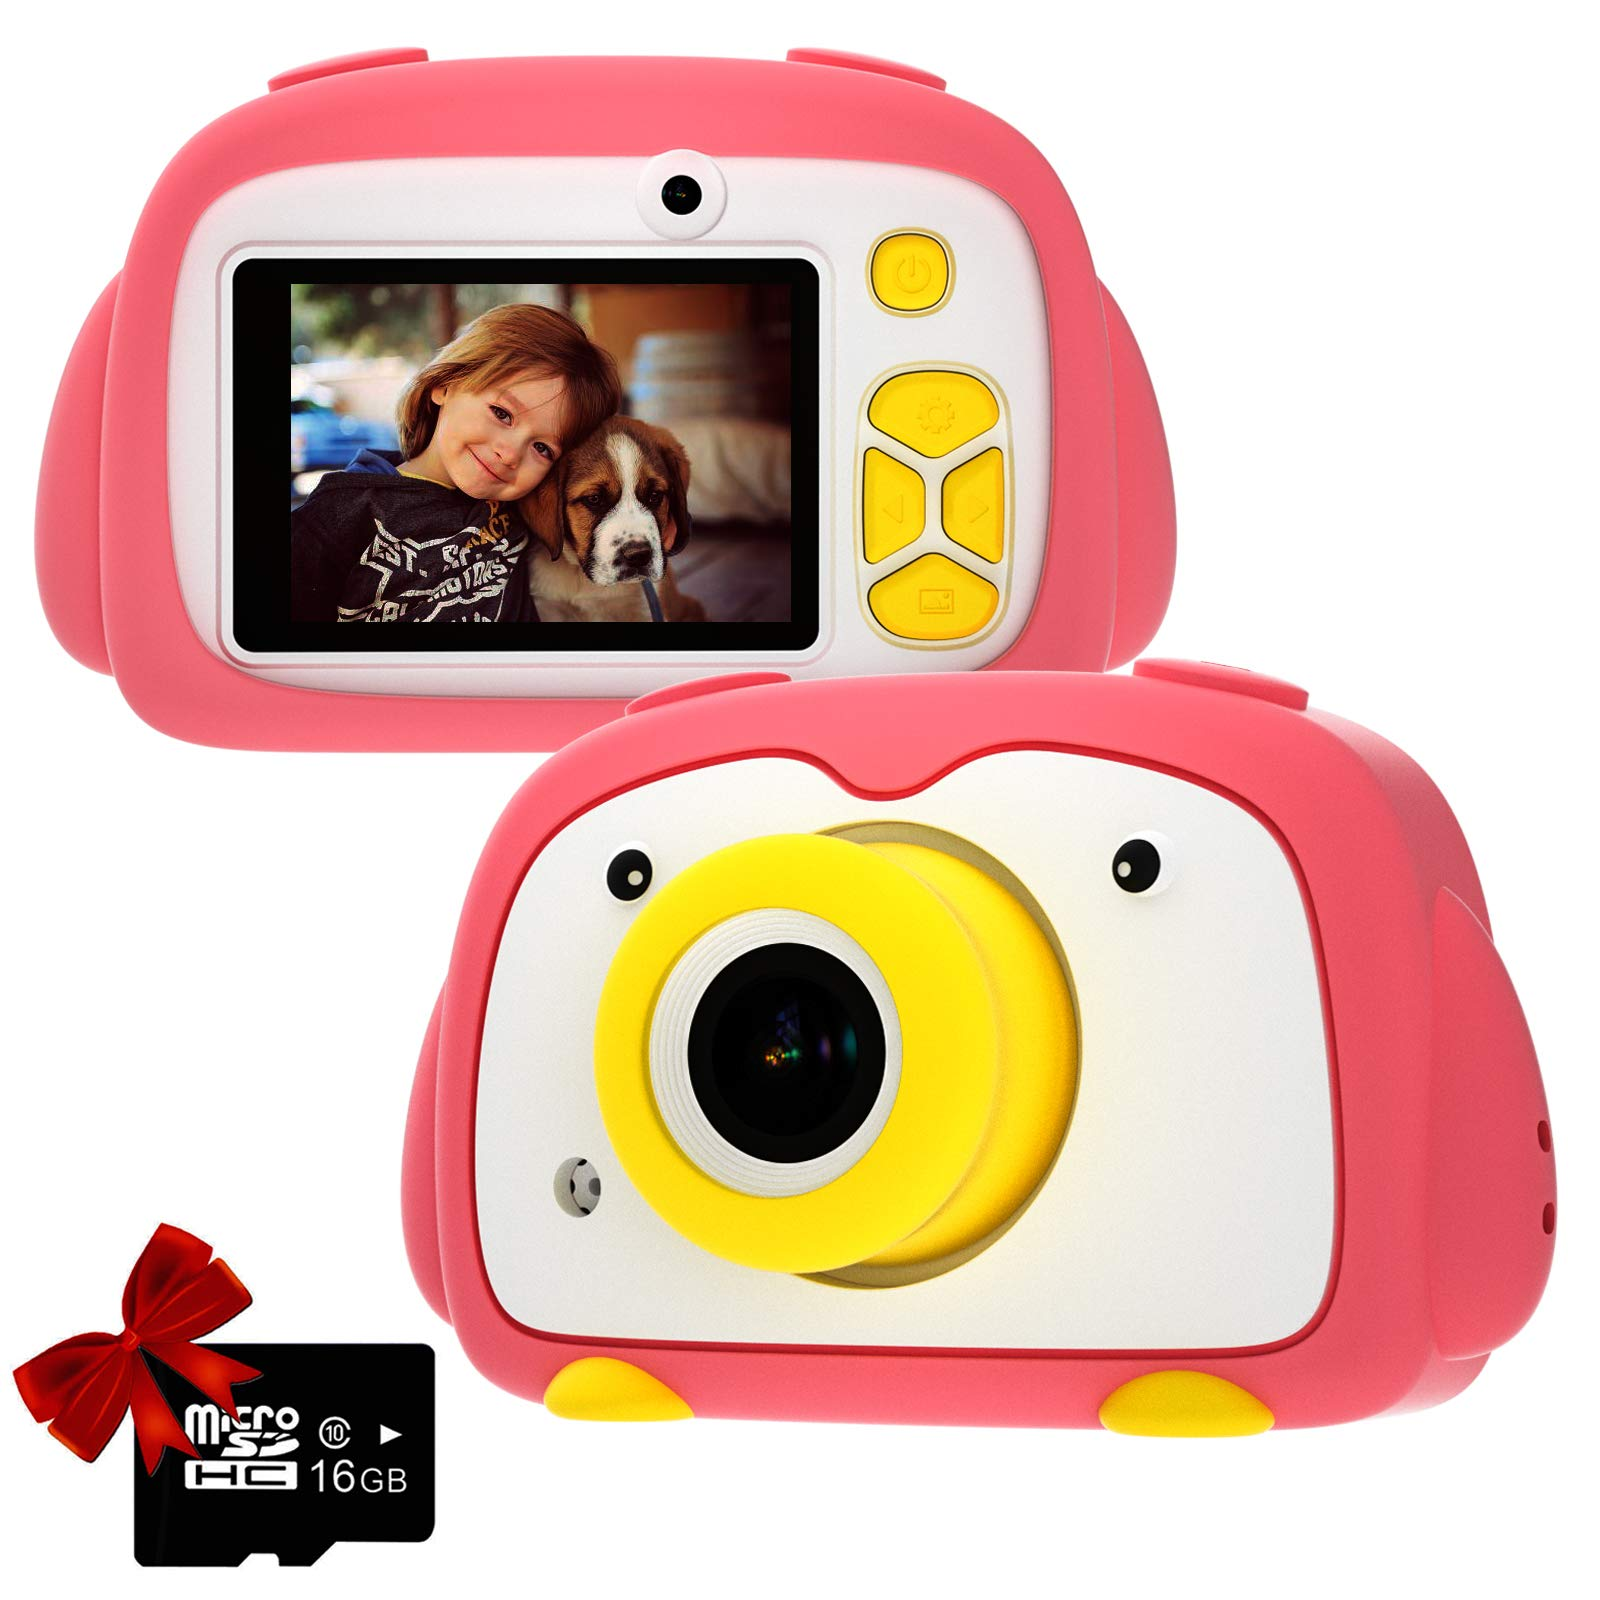 Kids Camera PANNOVO Digital Cam for Girls Rechargeable Video Recorder Cartoon Shockproof Silicone Case with 16GB SD Card 12MP HD 1080P 2 Inch Screen for 3-12 Year Old Boys Toddler (Pink) by PANNOVO